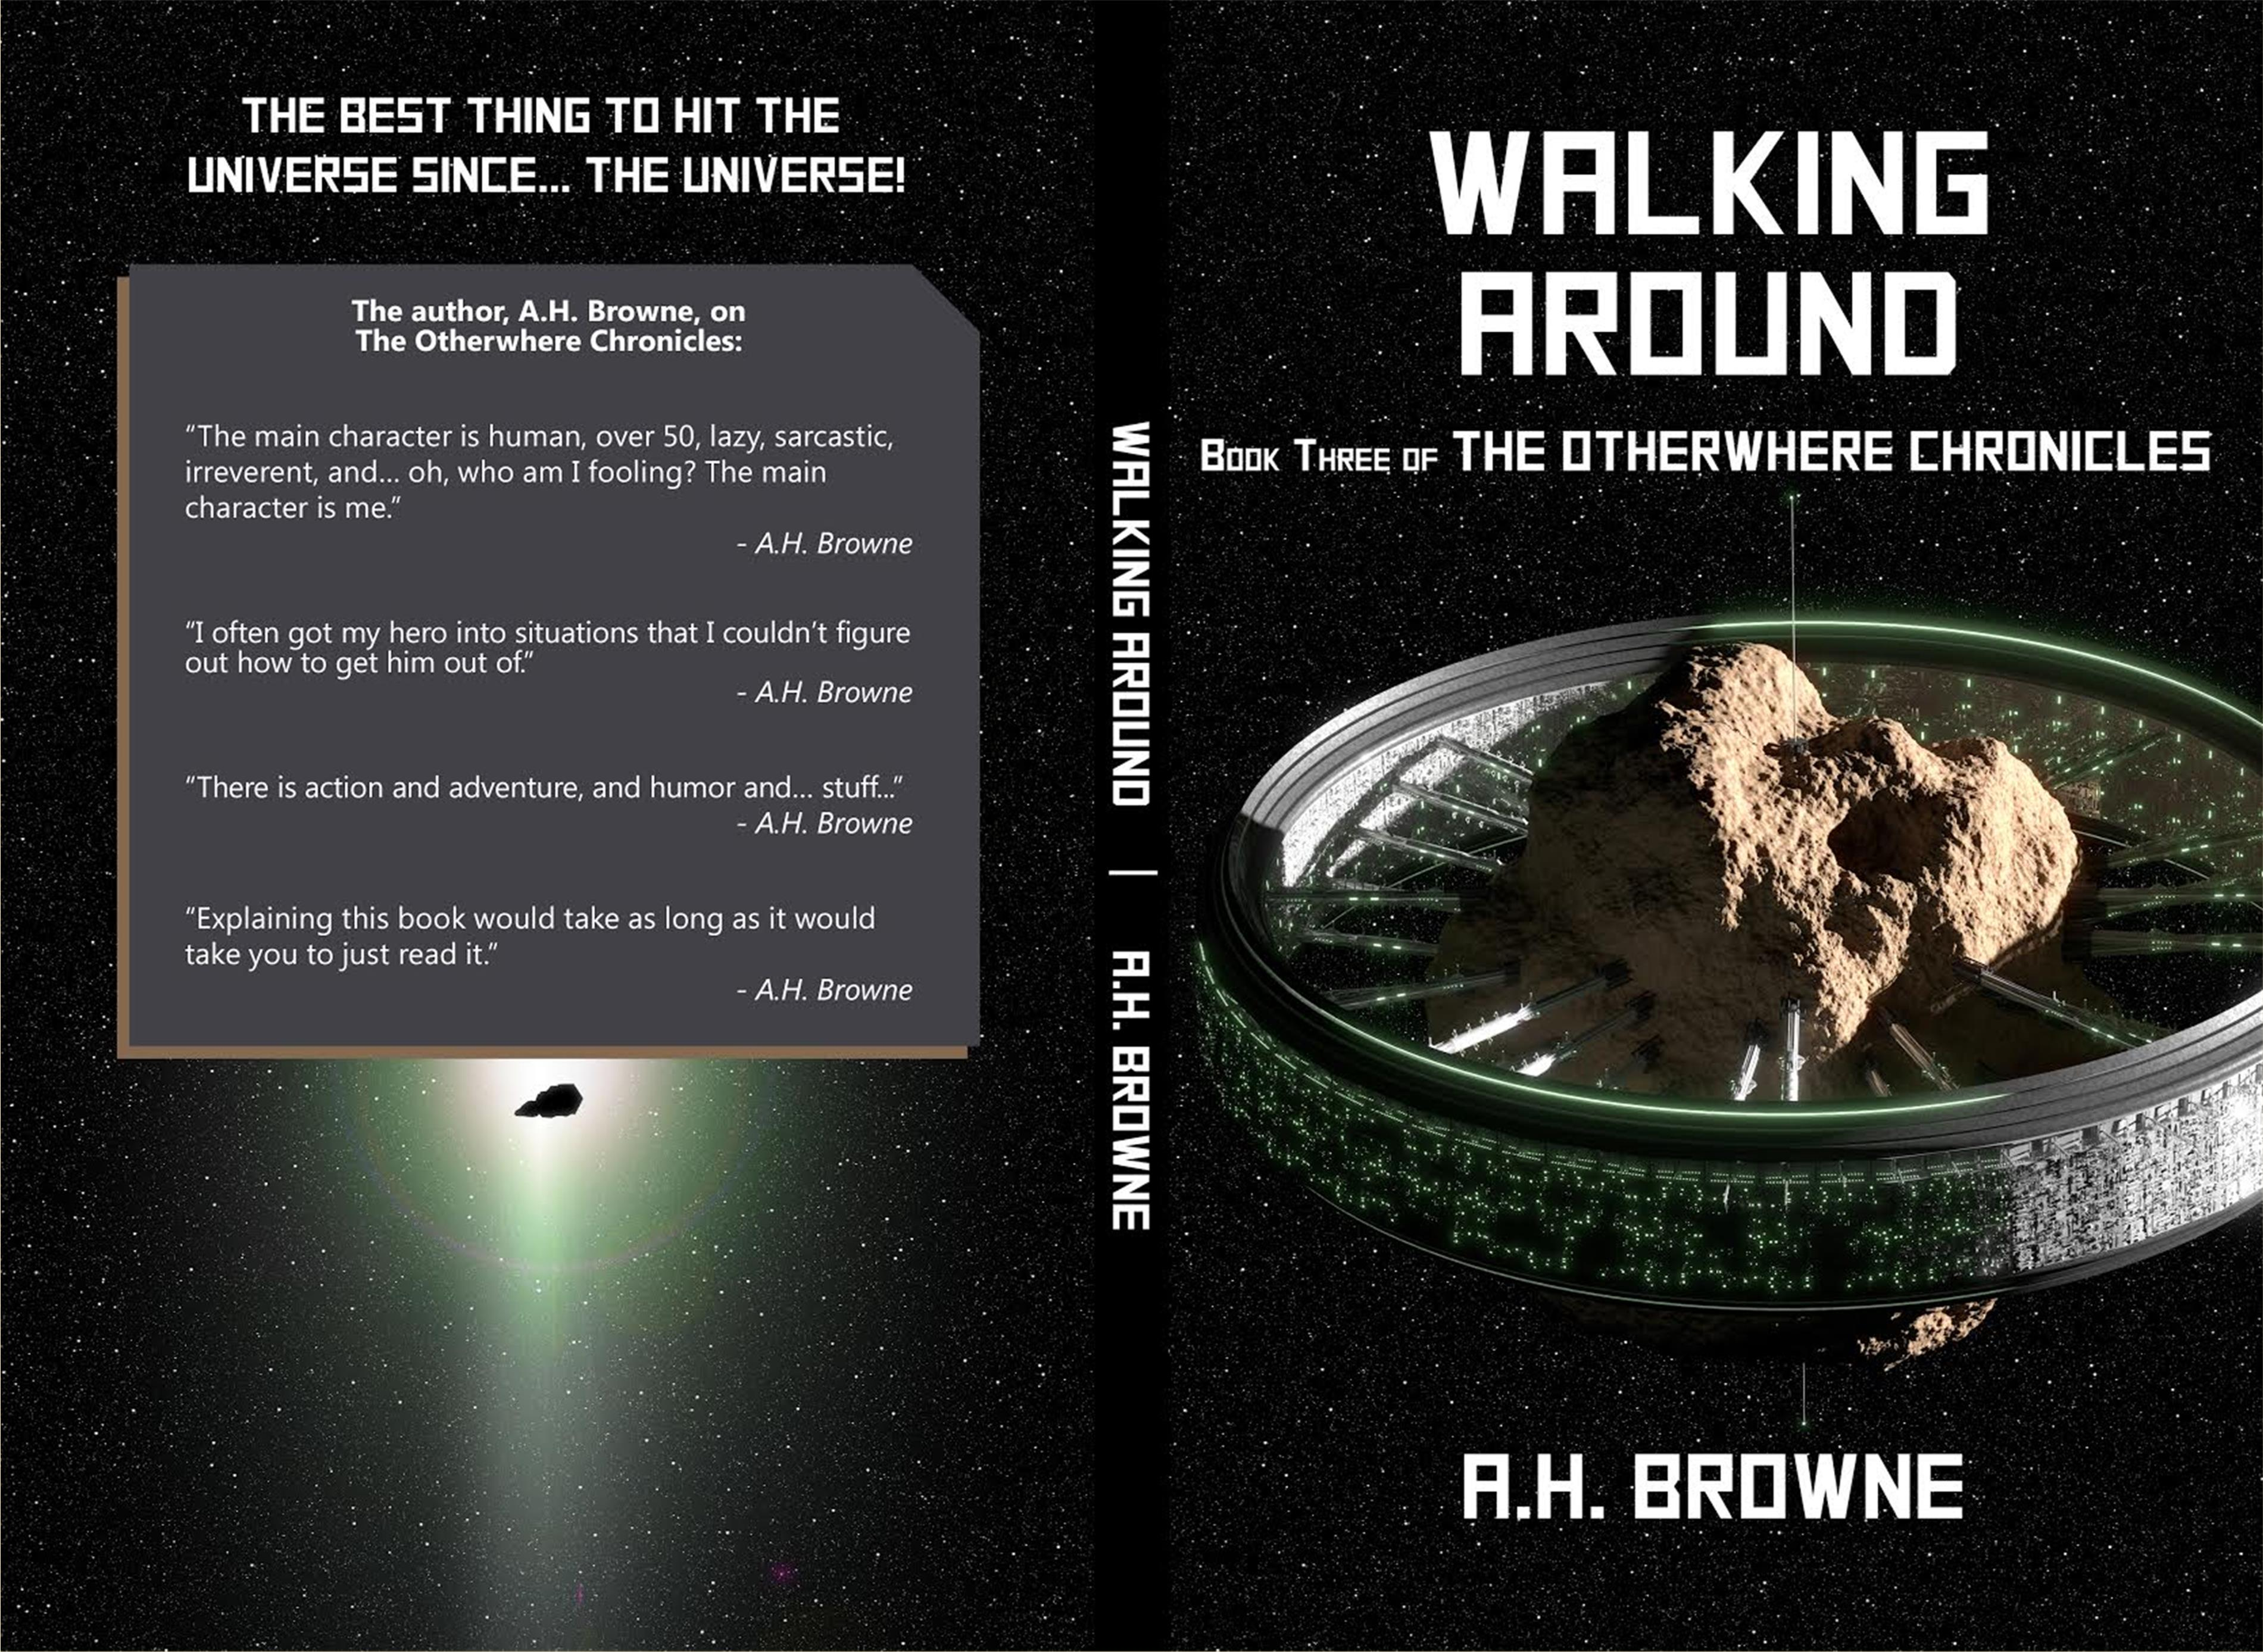 The Otherwhere Chronicles Book Three: Walking Around cover image